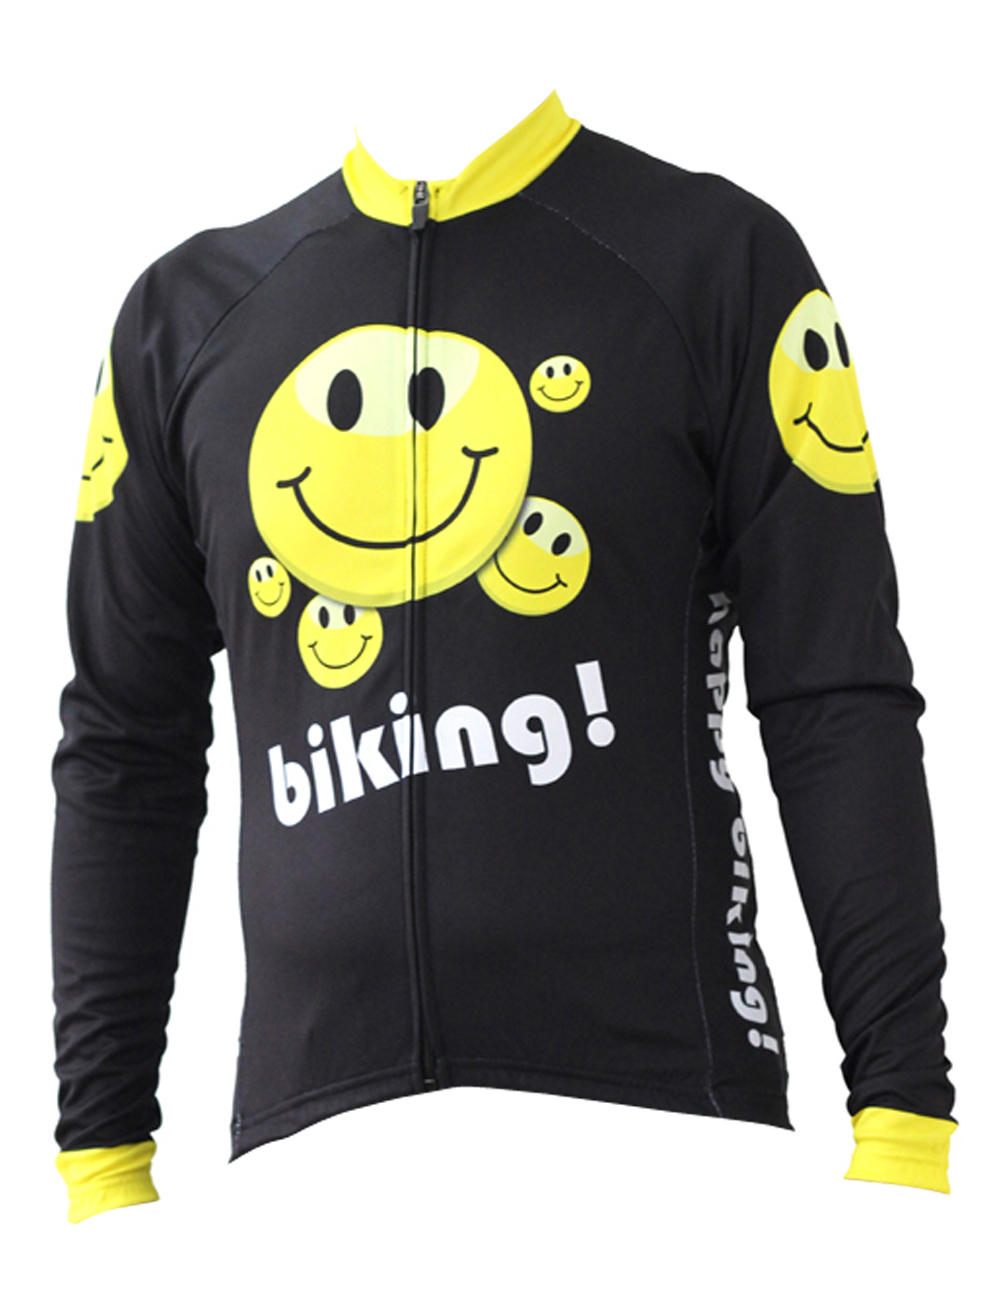 Smile Biking Cycling shirt bike equipment Mens Long Sleeve Cycling Jersey Cycling Clothing Bike Shirt Size 2XS To 6XL ILPALADIN new 17 black red spider mens breathable bike clothing polyester autumn long sleeve cycling jerseys size 2xs to 6xl